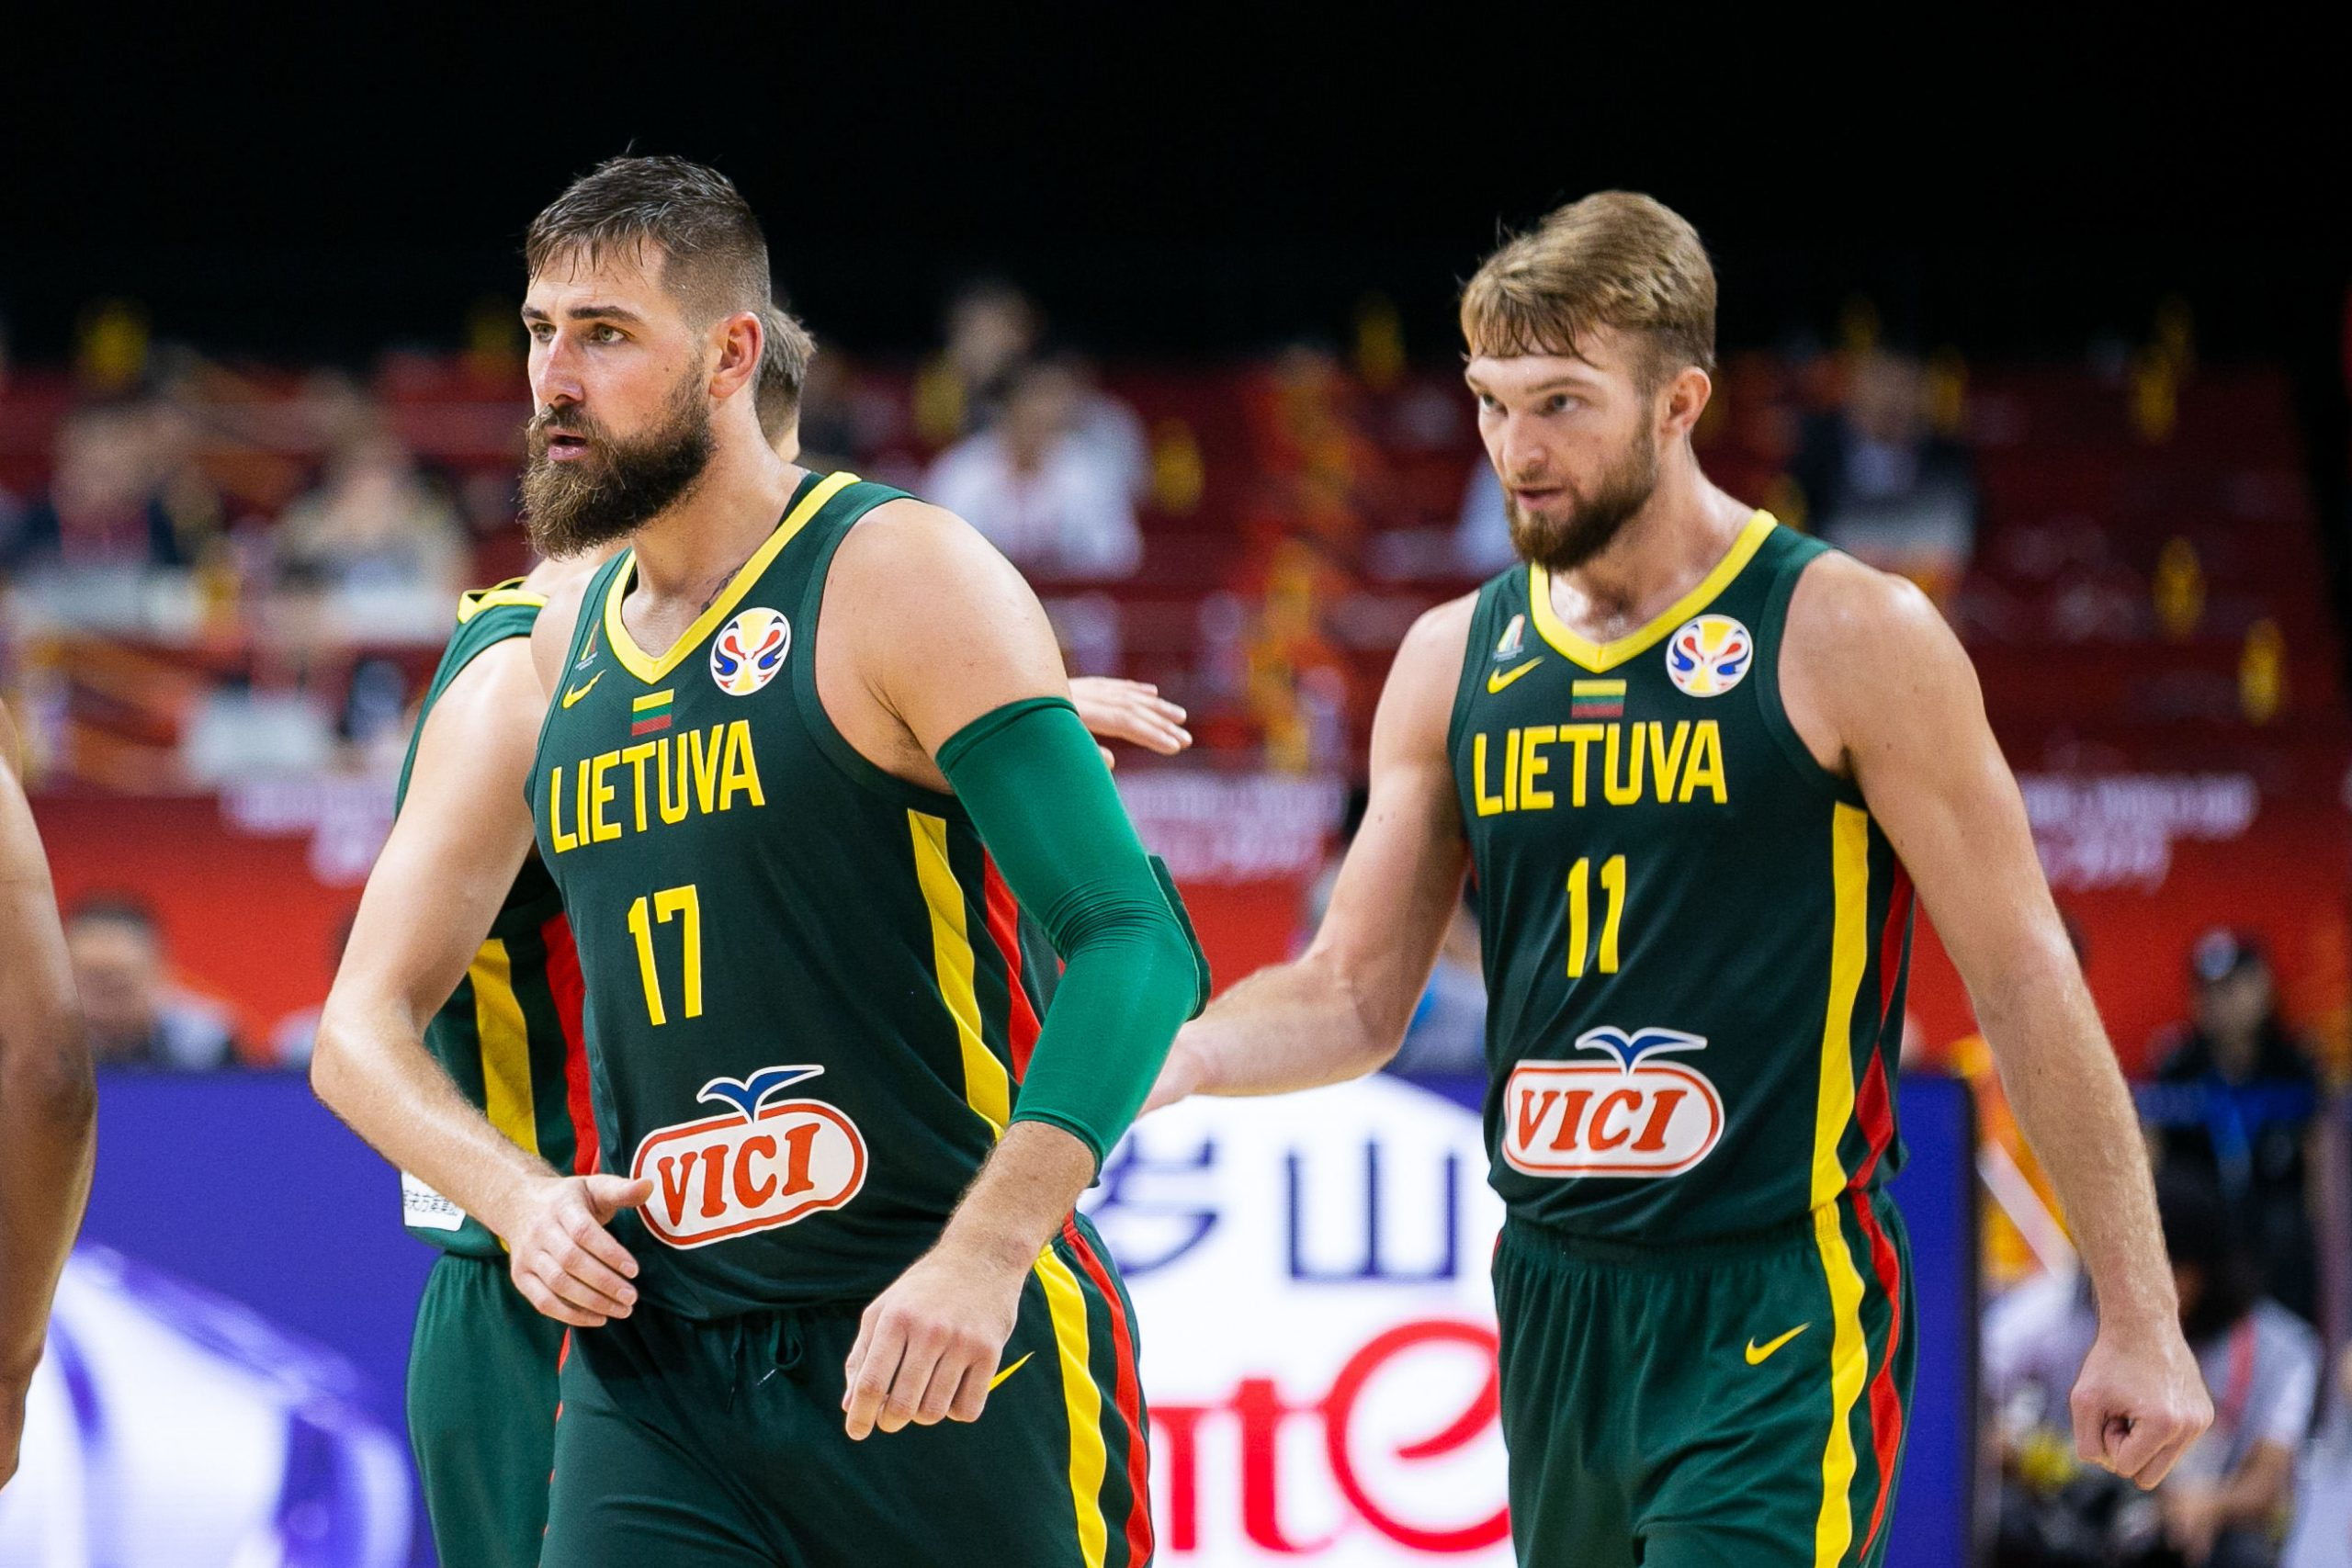 Domantas Sabonis and Jonas Valanciunas are in Lithuania's preliminary squad  to face Belgium   This Is Basketball